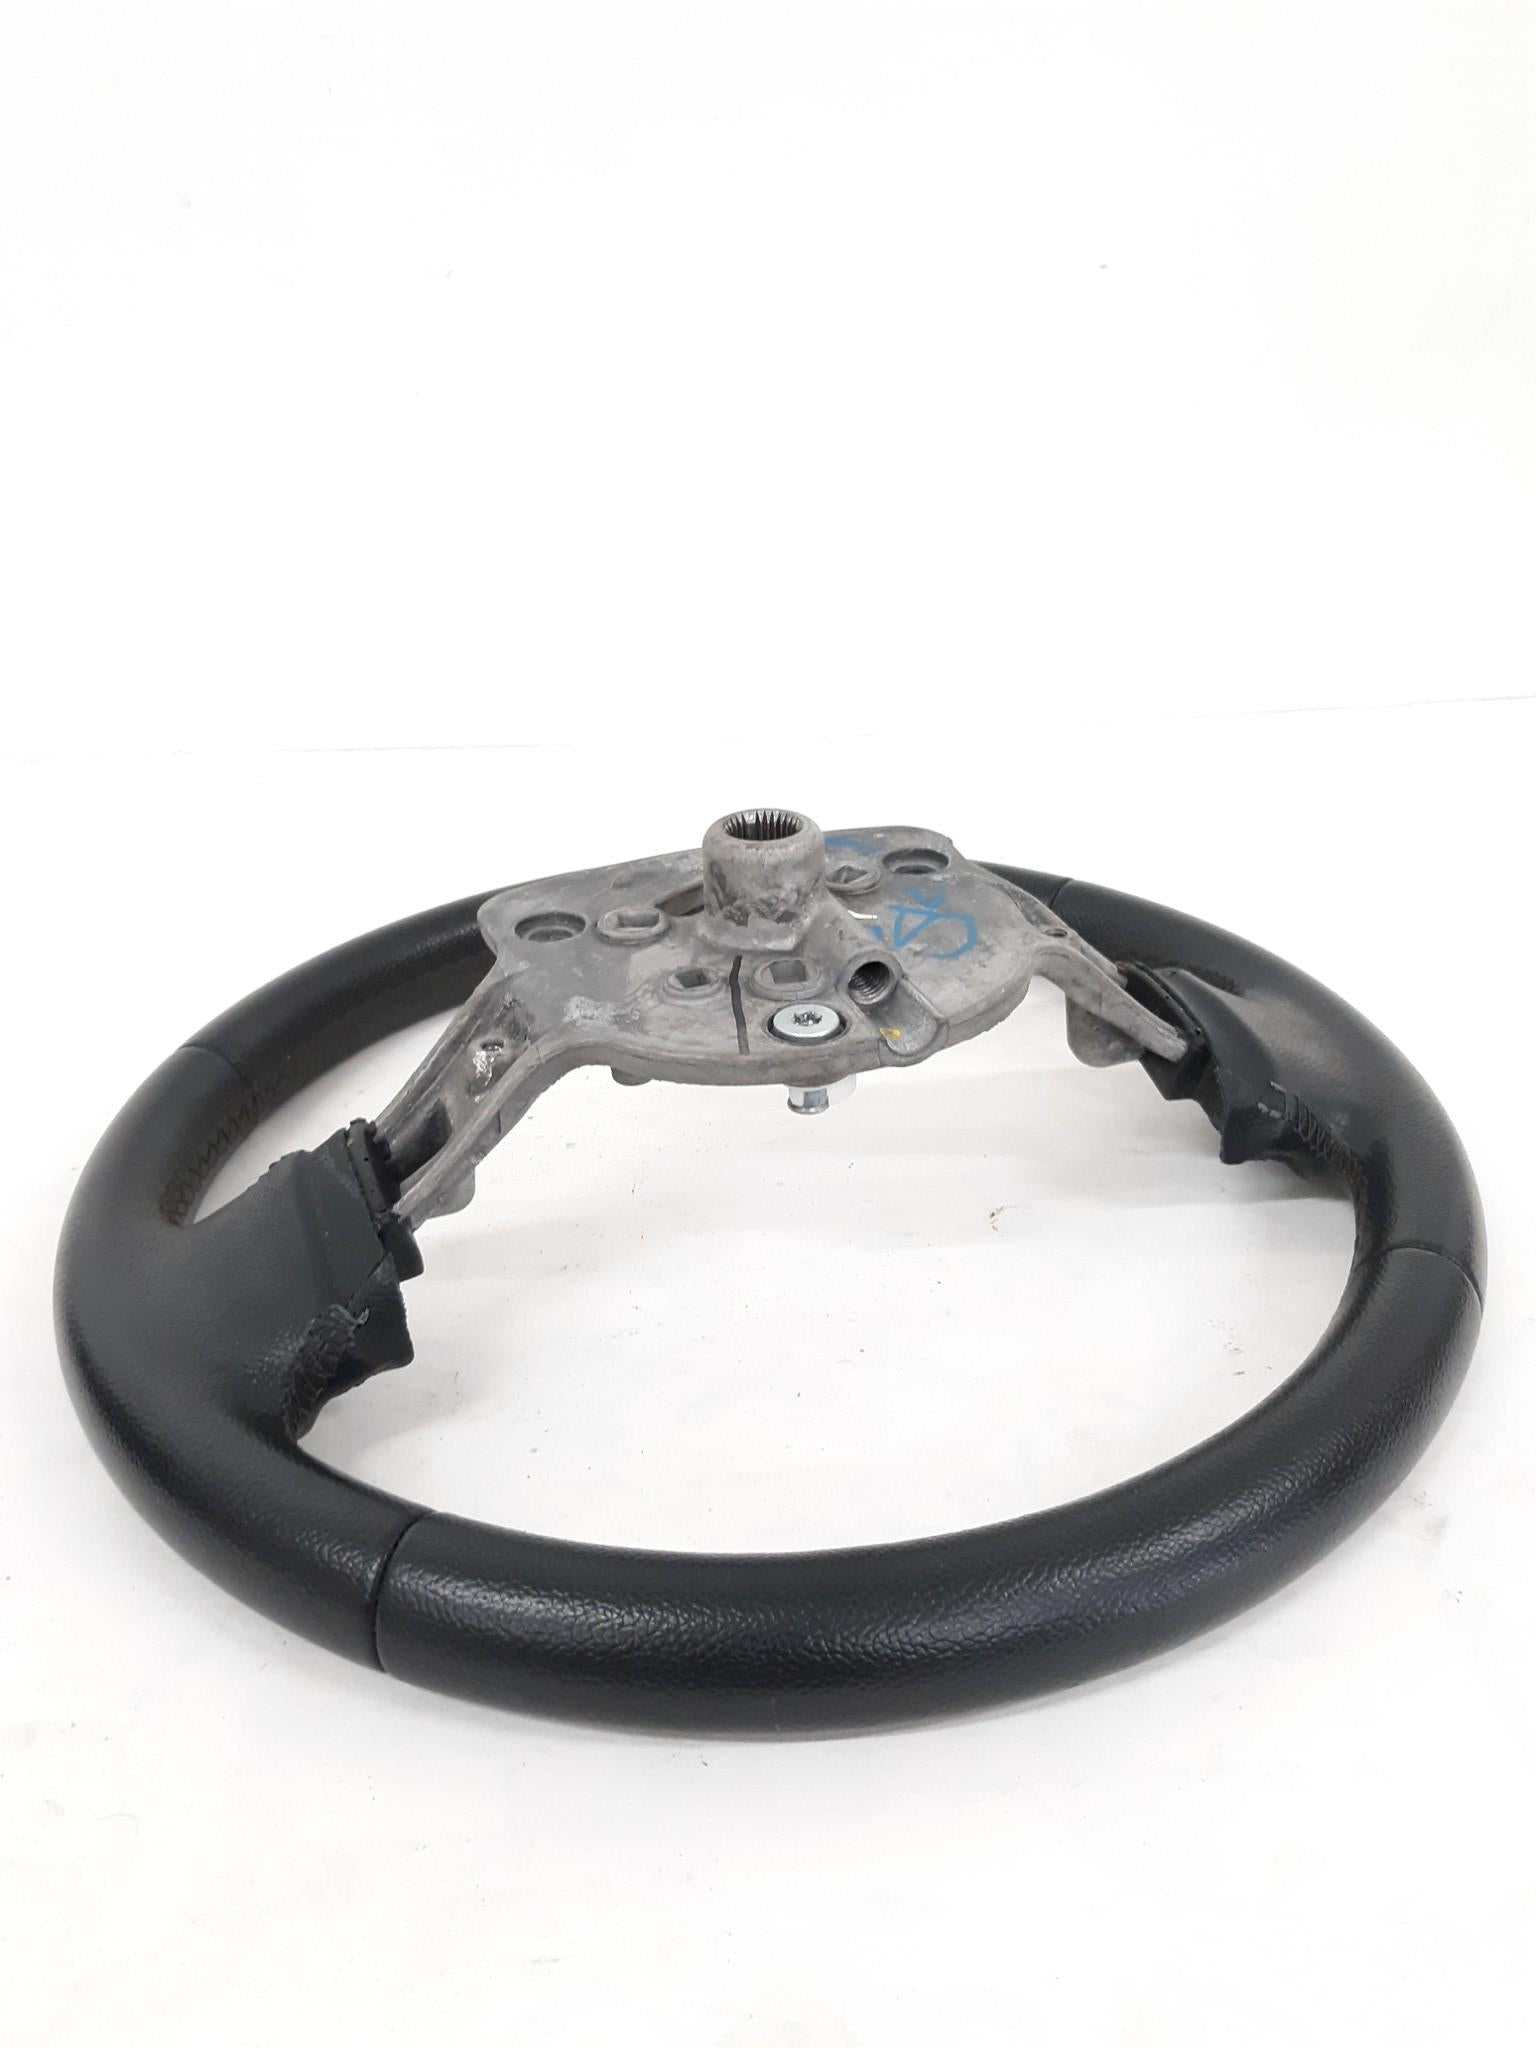 SMART FORTWO STEERING WHEEL 2 SPOKE 2008 2009 2010 2011 2012 2014 16877710 OEM - Click Receive Auto Parts